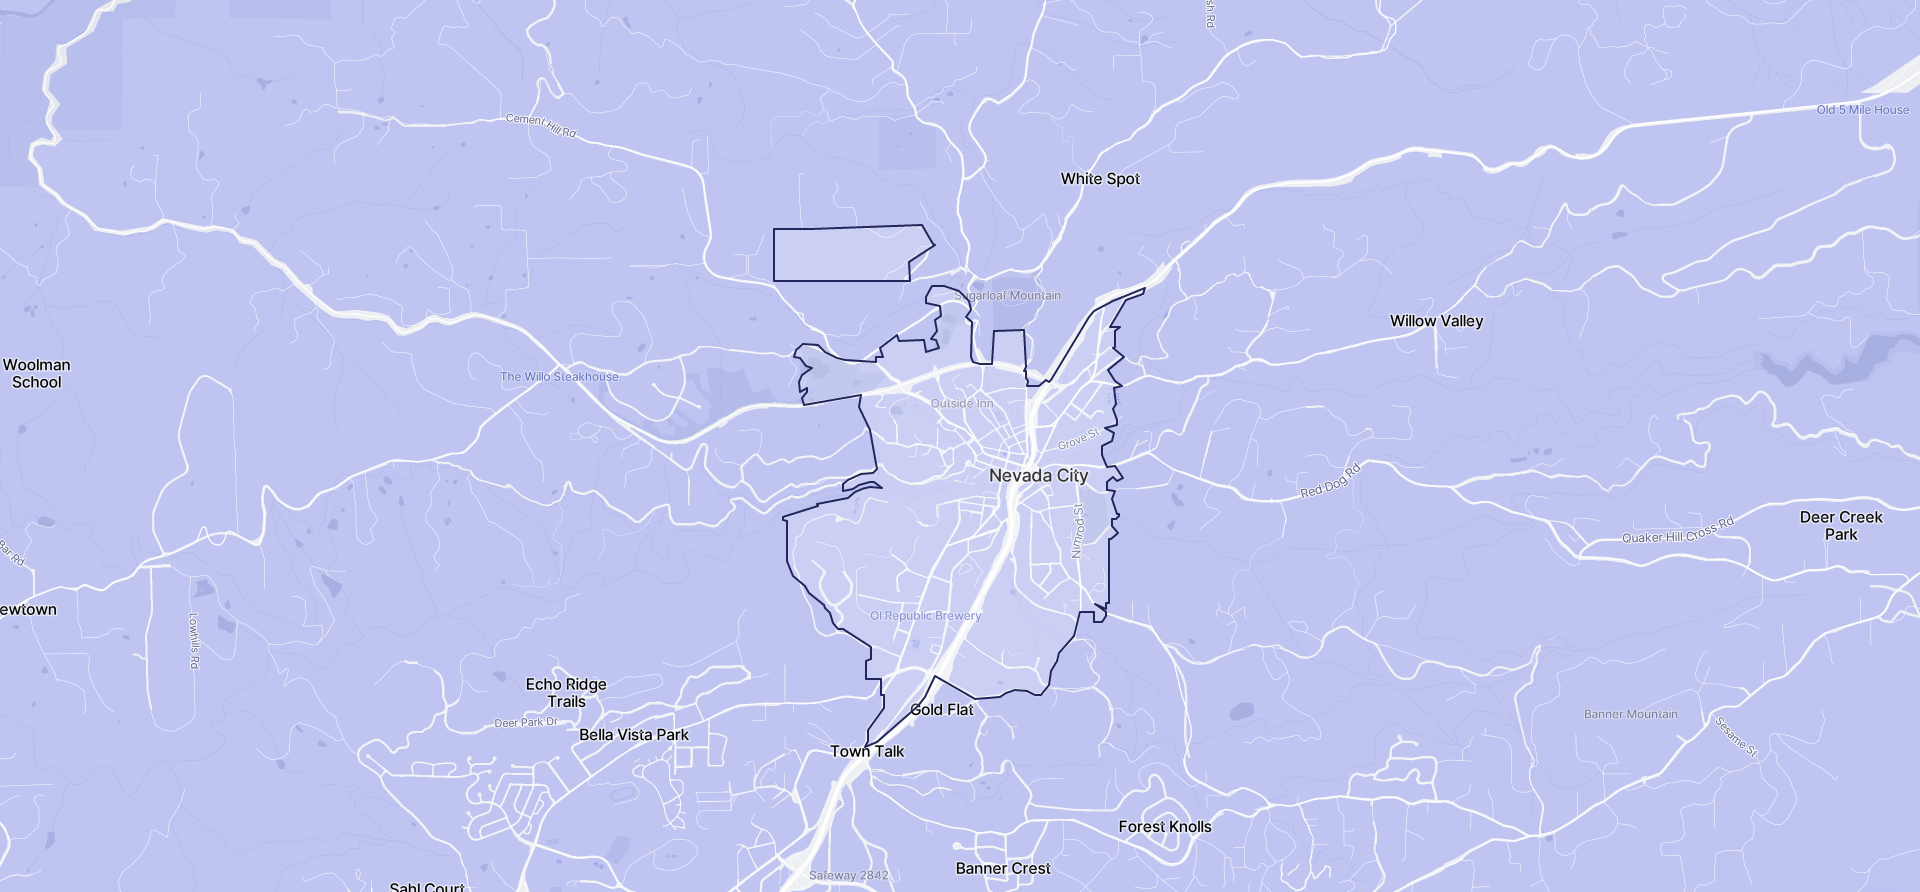 Image of Nevada City boundaries on a map.